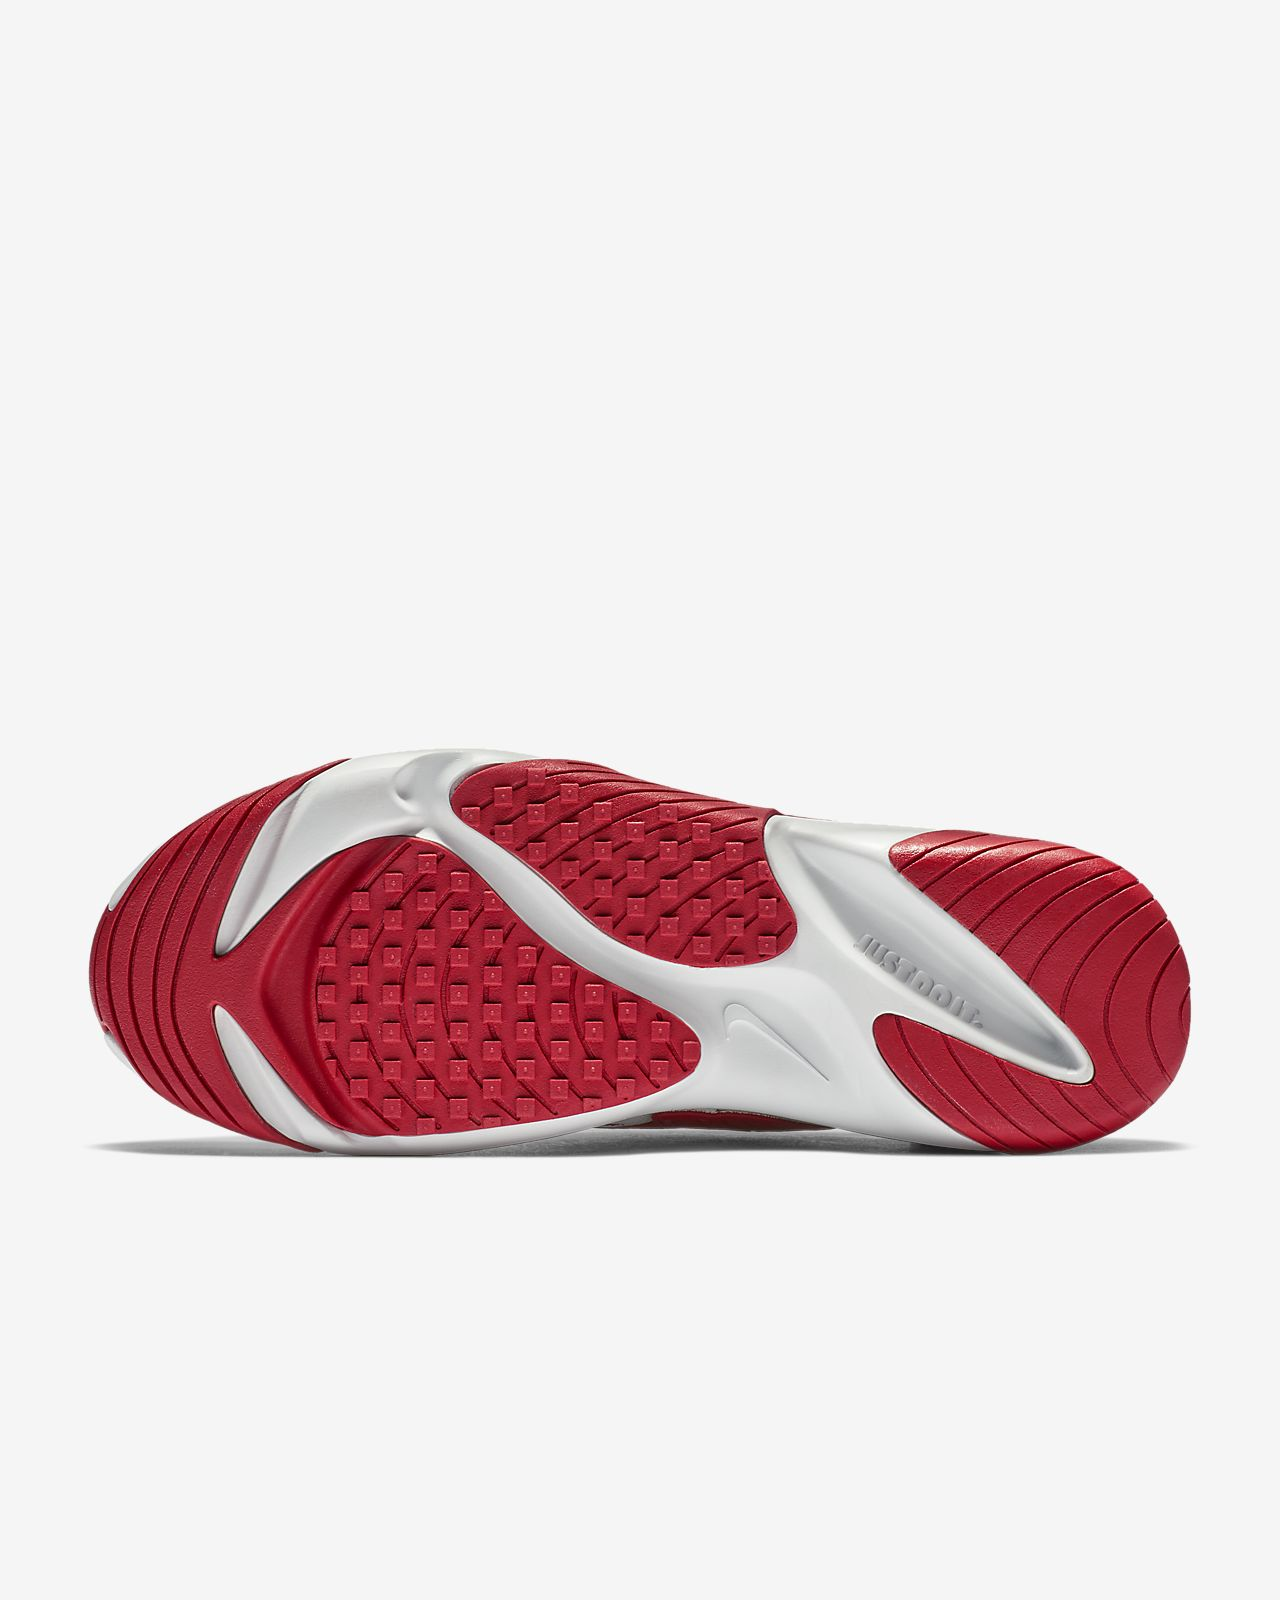 cheaper 5a56c d9205 ... Chaussure Nike Zoom 2K pour Homme